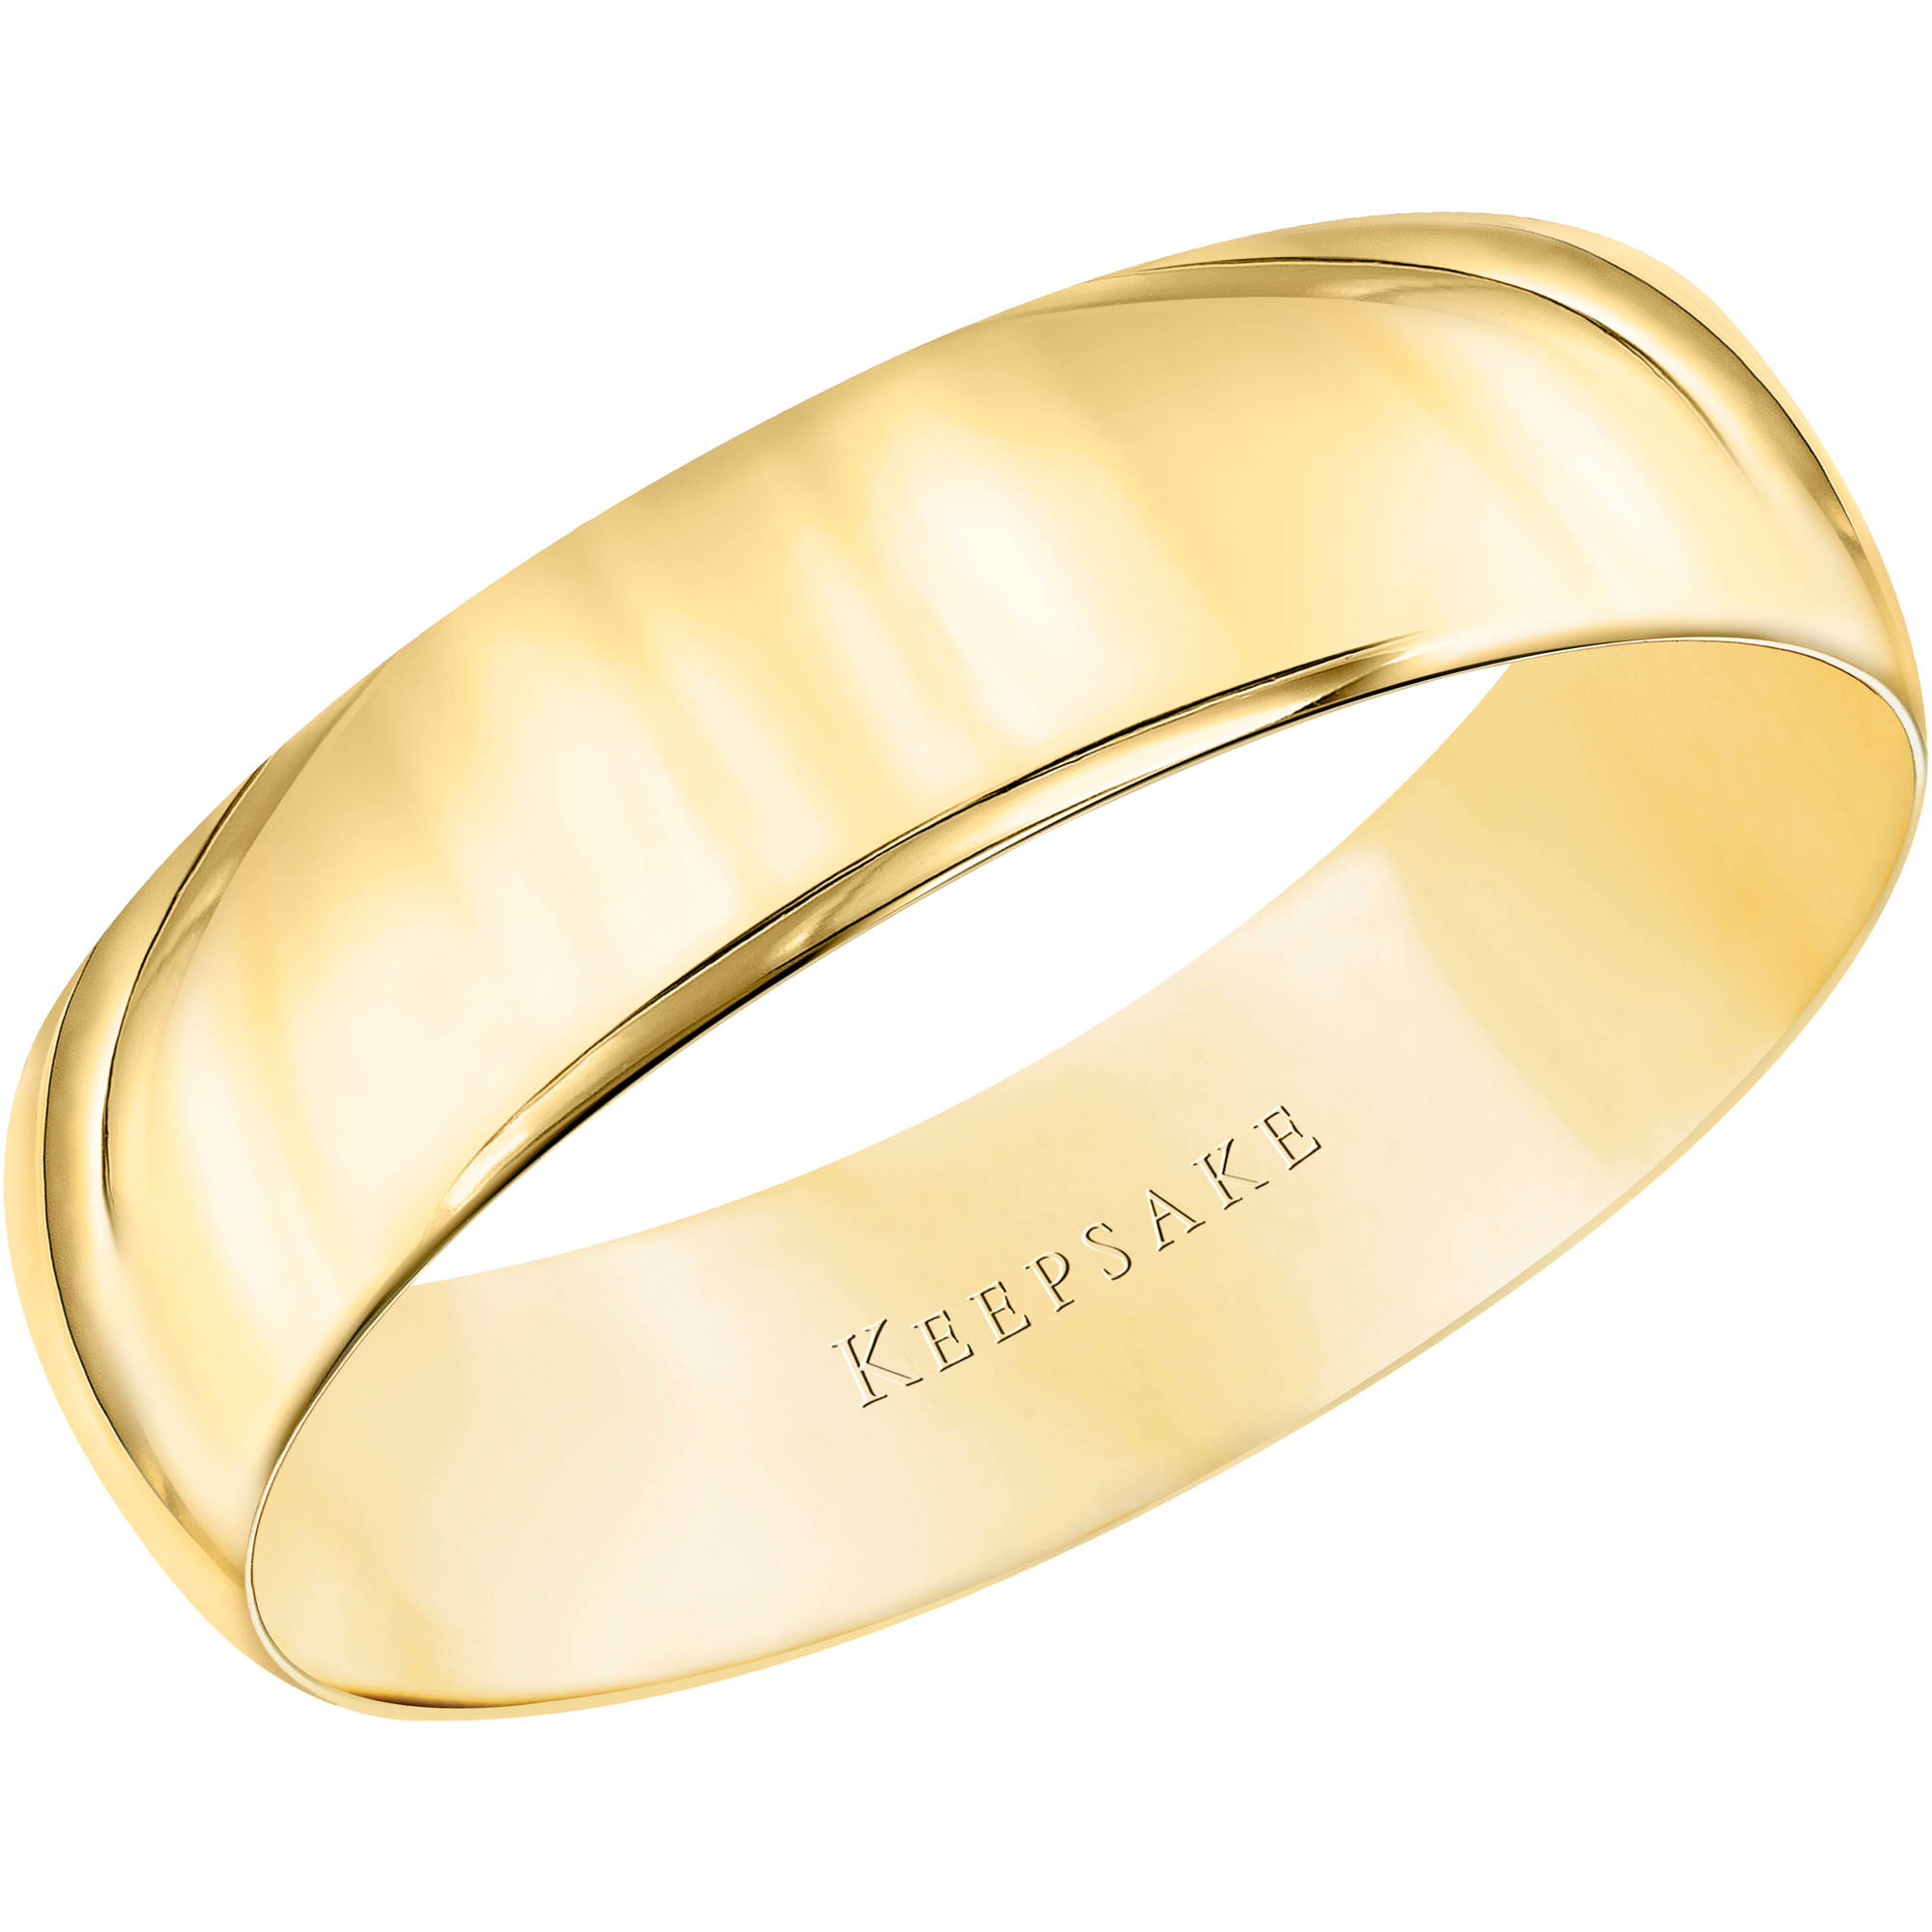 Superbe Keepsake 10kt Yellow Gold Wedding Band With High Polish Finish, 5mm